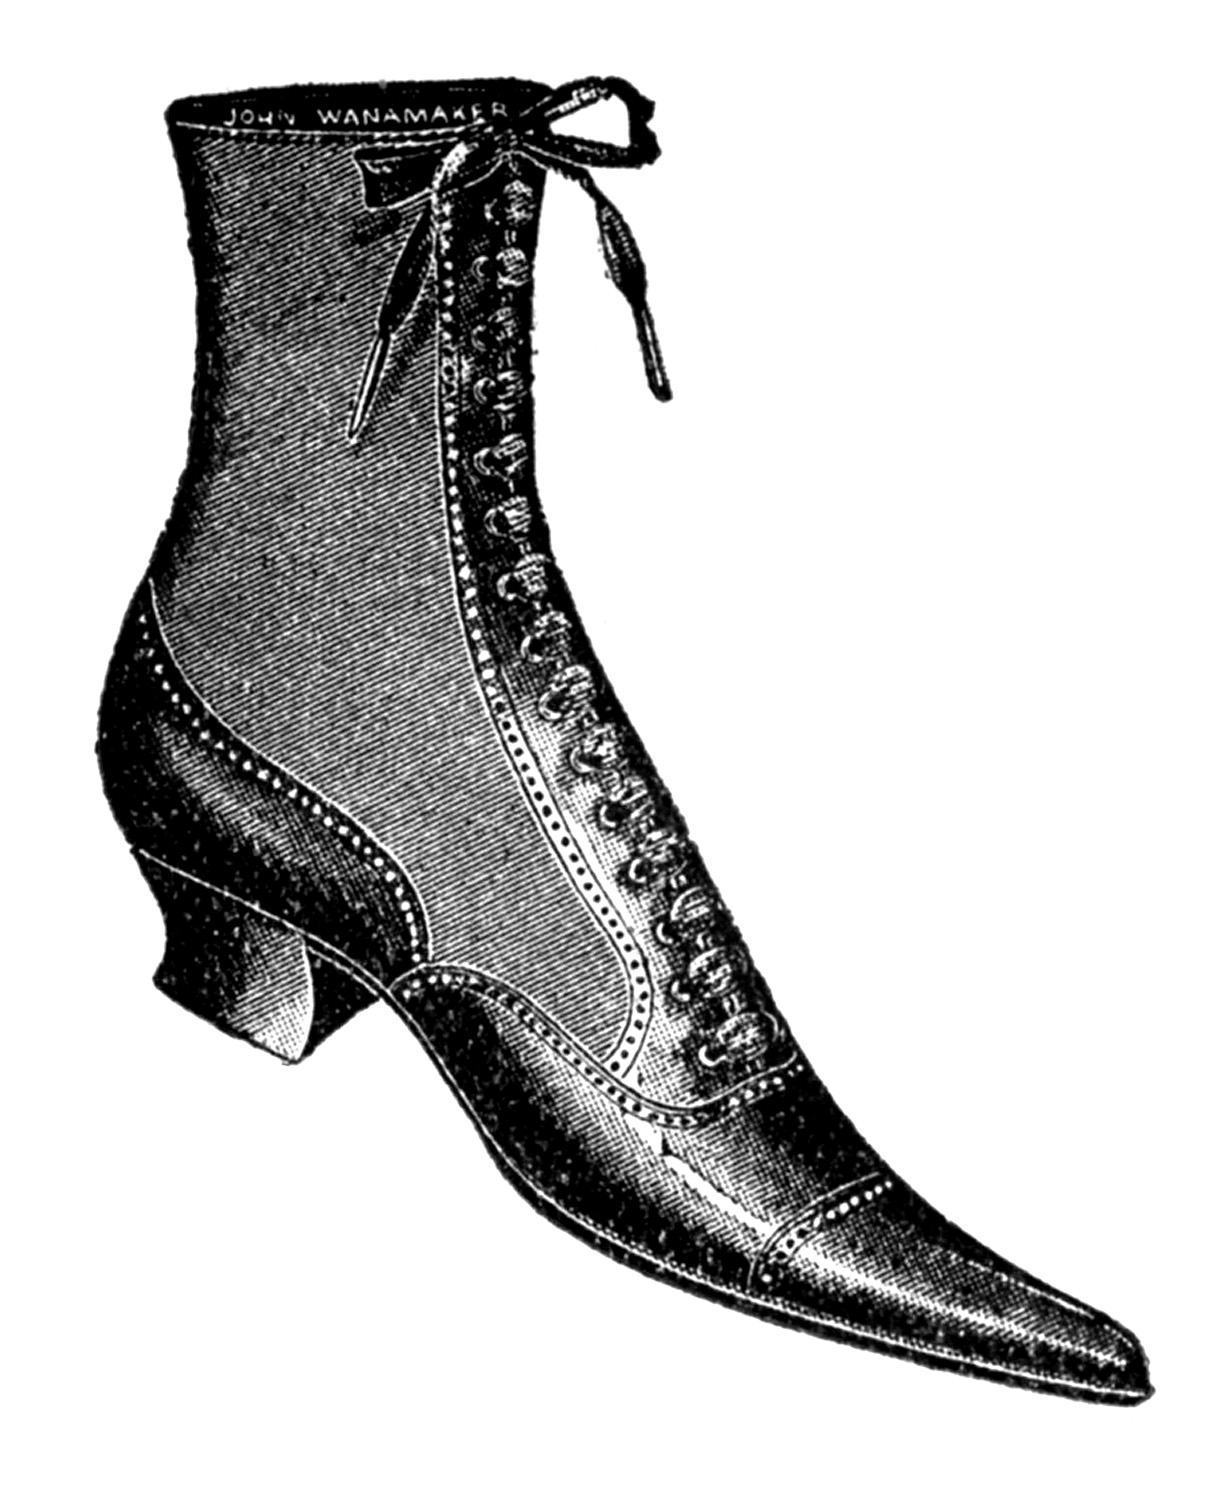 Old Fashioned Shoes Drawing